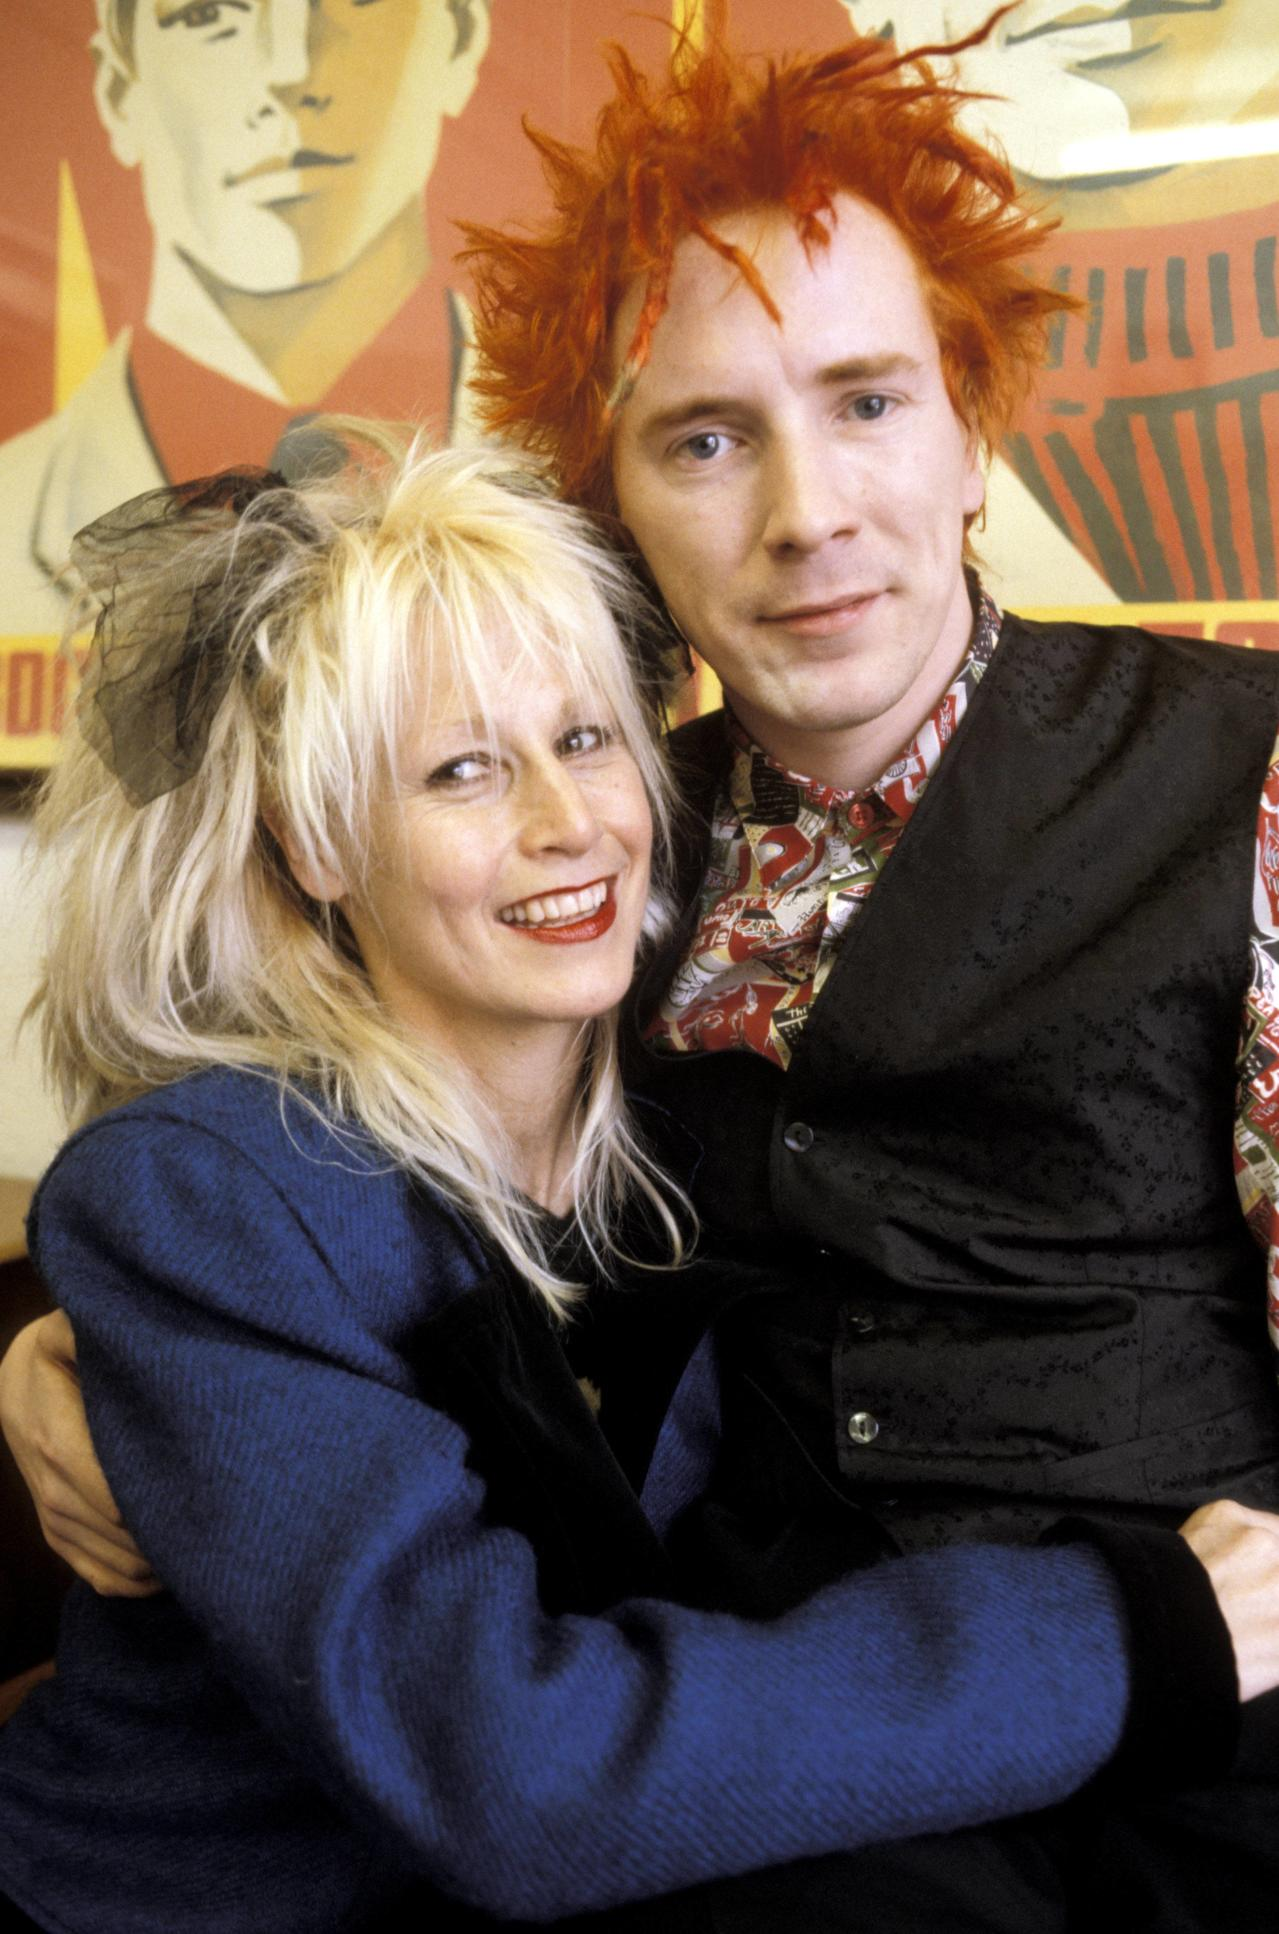 Sex Pistols Johnny Rotten Reveals He Is His Wifes Full